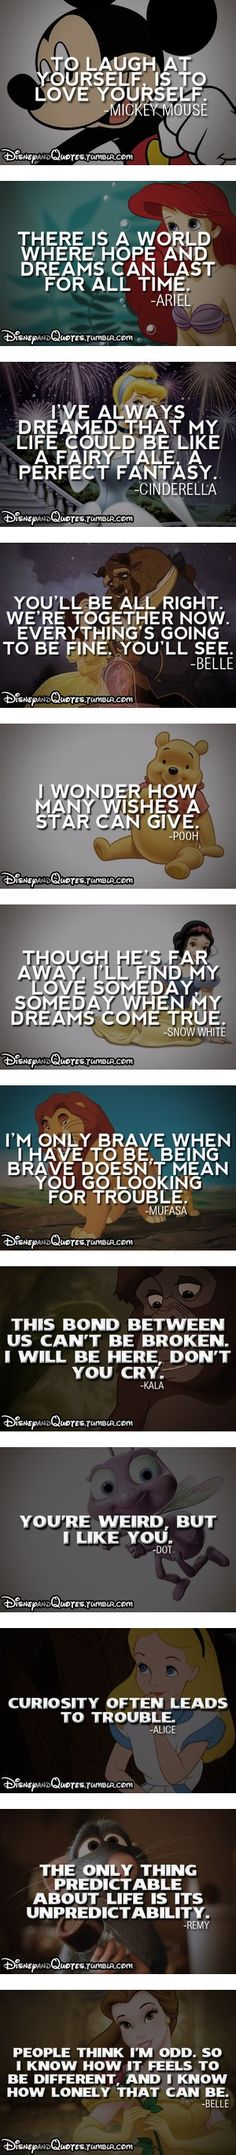 Oh Disney | Tattoo Ideas Central